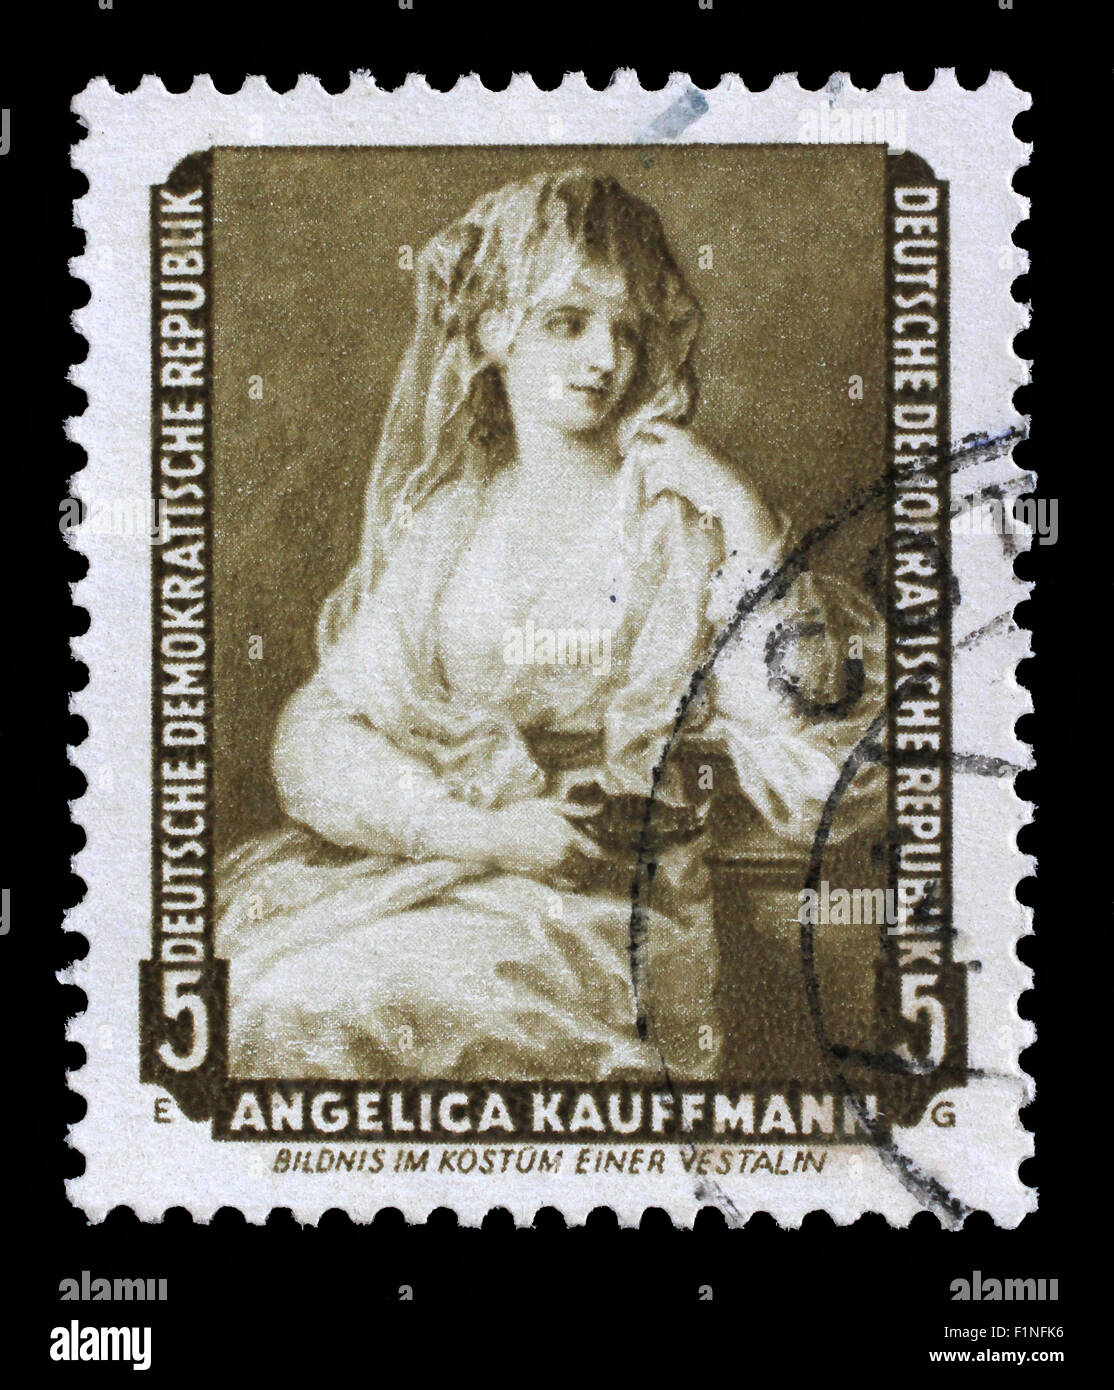 Stamp printed in DDR shows the painting Portrait of a Lady as a Vestal Virgin, by Angelica Kauffmann, circa 1957. - Stock Image